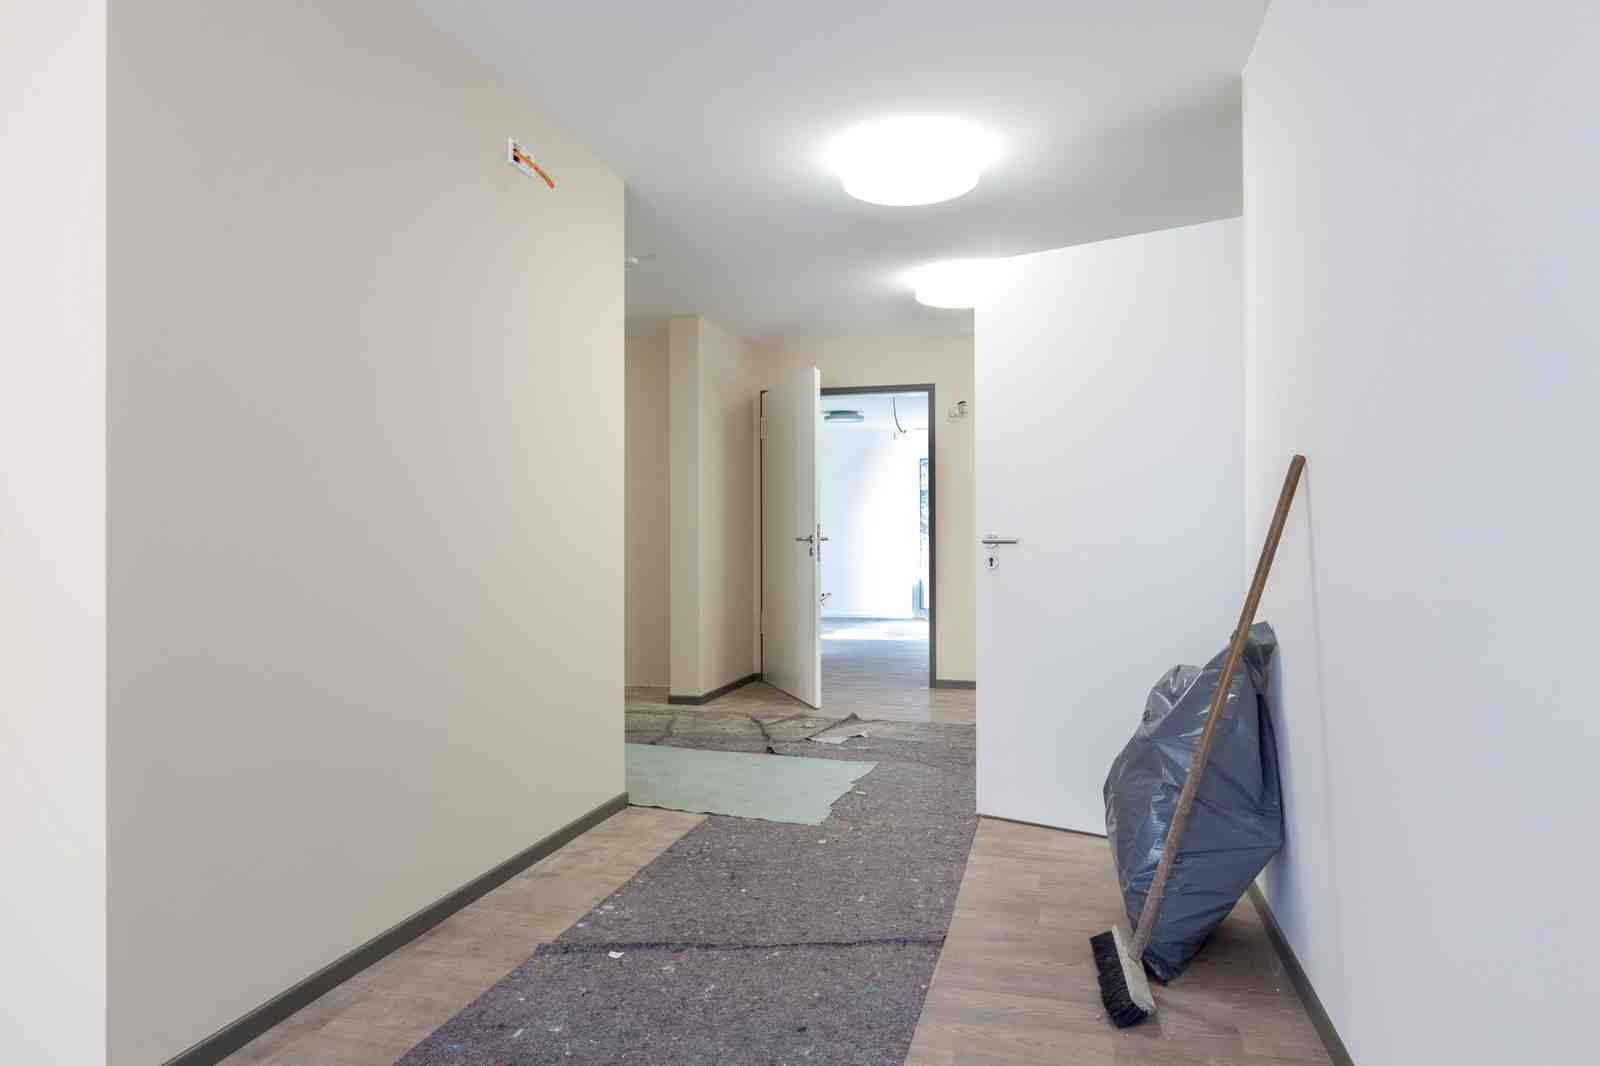 Peinture int rieure r novation r fection travaux de for Peintre decorateur interieur